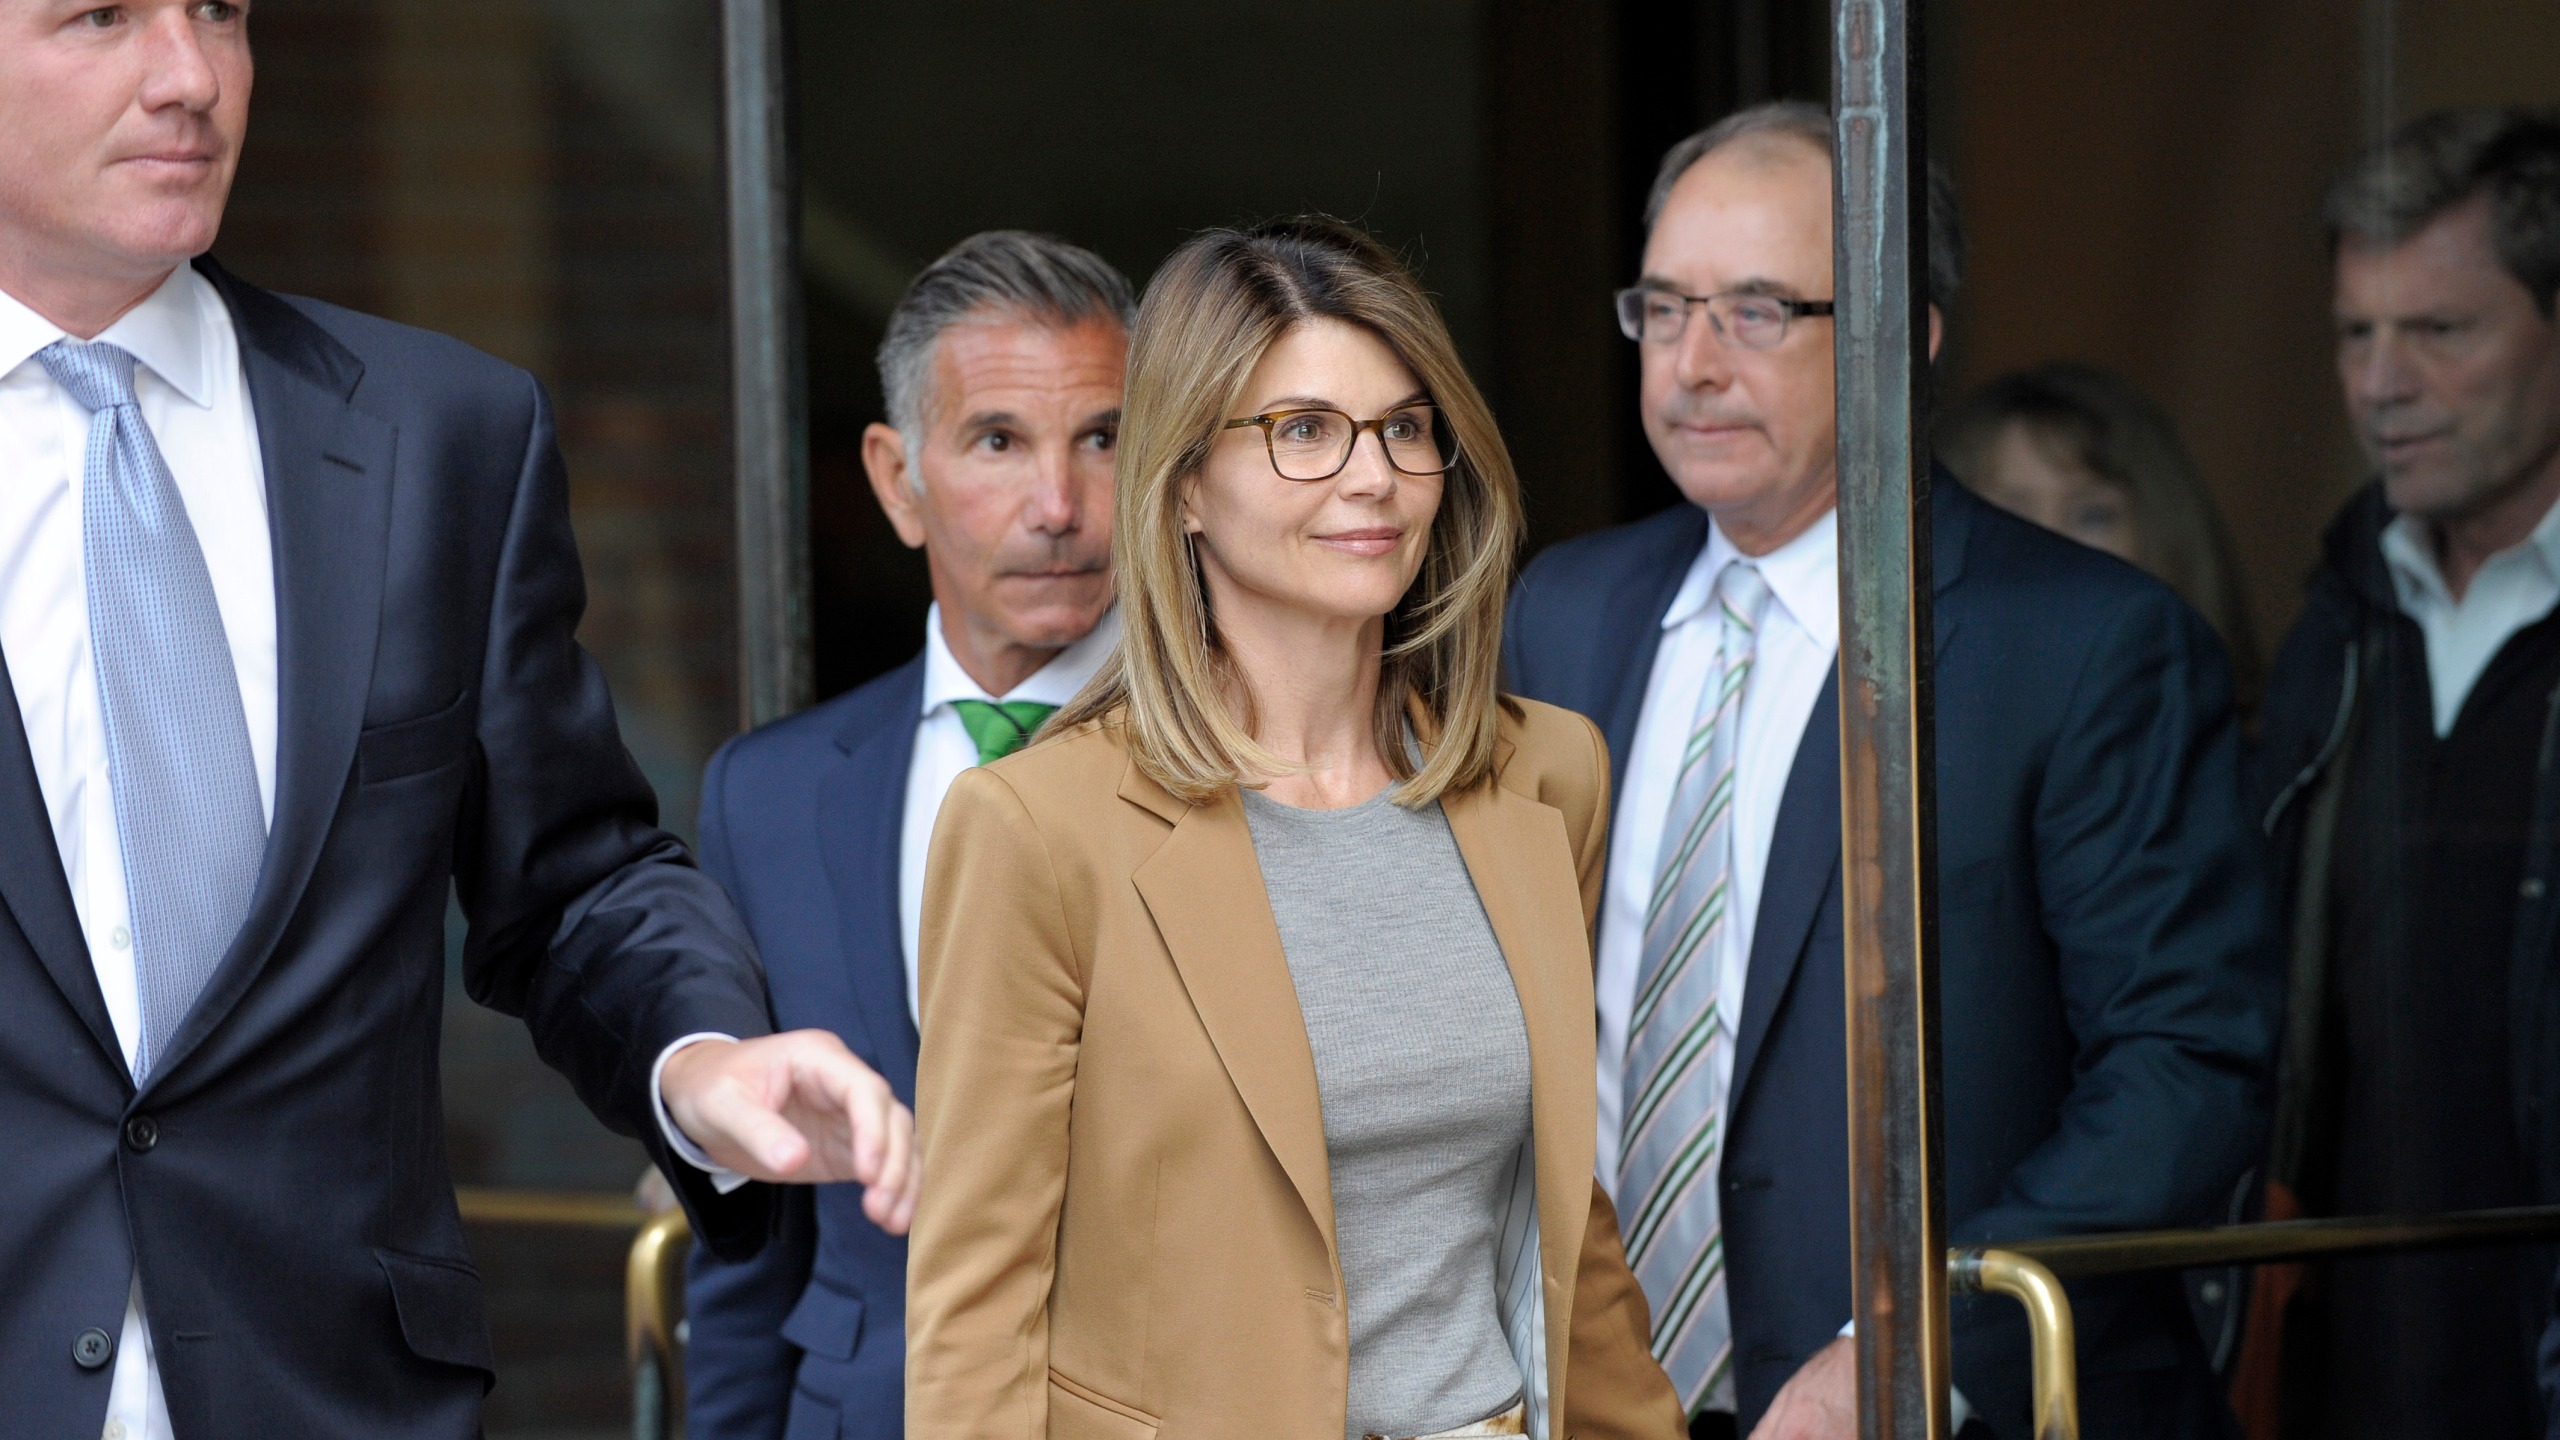 Actress Lori Loughlin exits the courthouse after facing charges for allegedly conspiring to commit mail fraud and other charges in the college admissions scandal at the John Joseph Moakley United States Courthouse in Boston on April 3, 2019. (Joseph Prezioso/AFP via Getty Images)